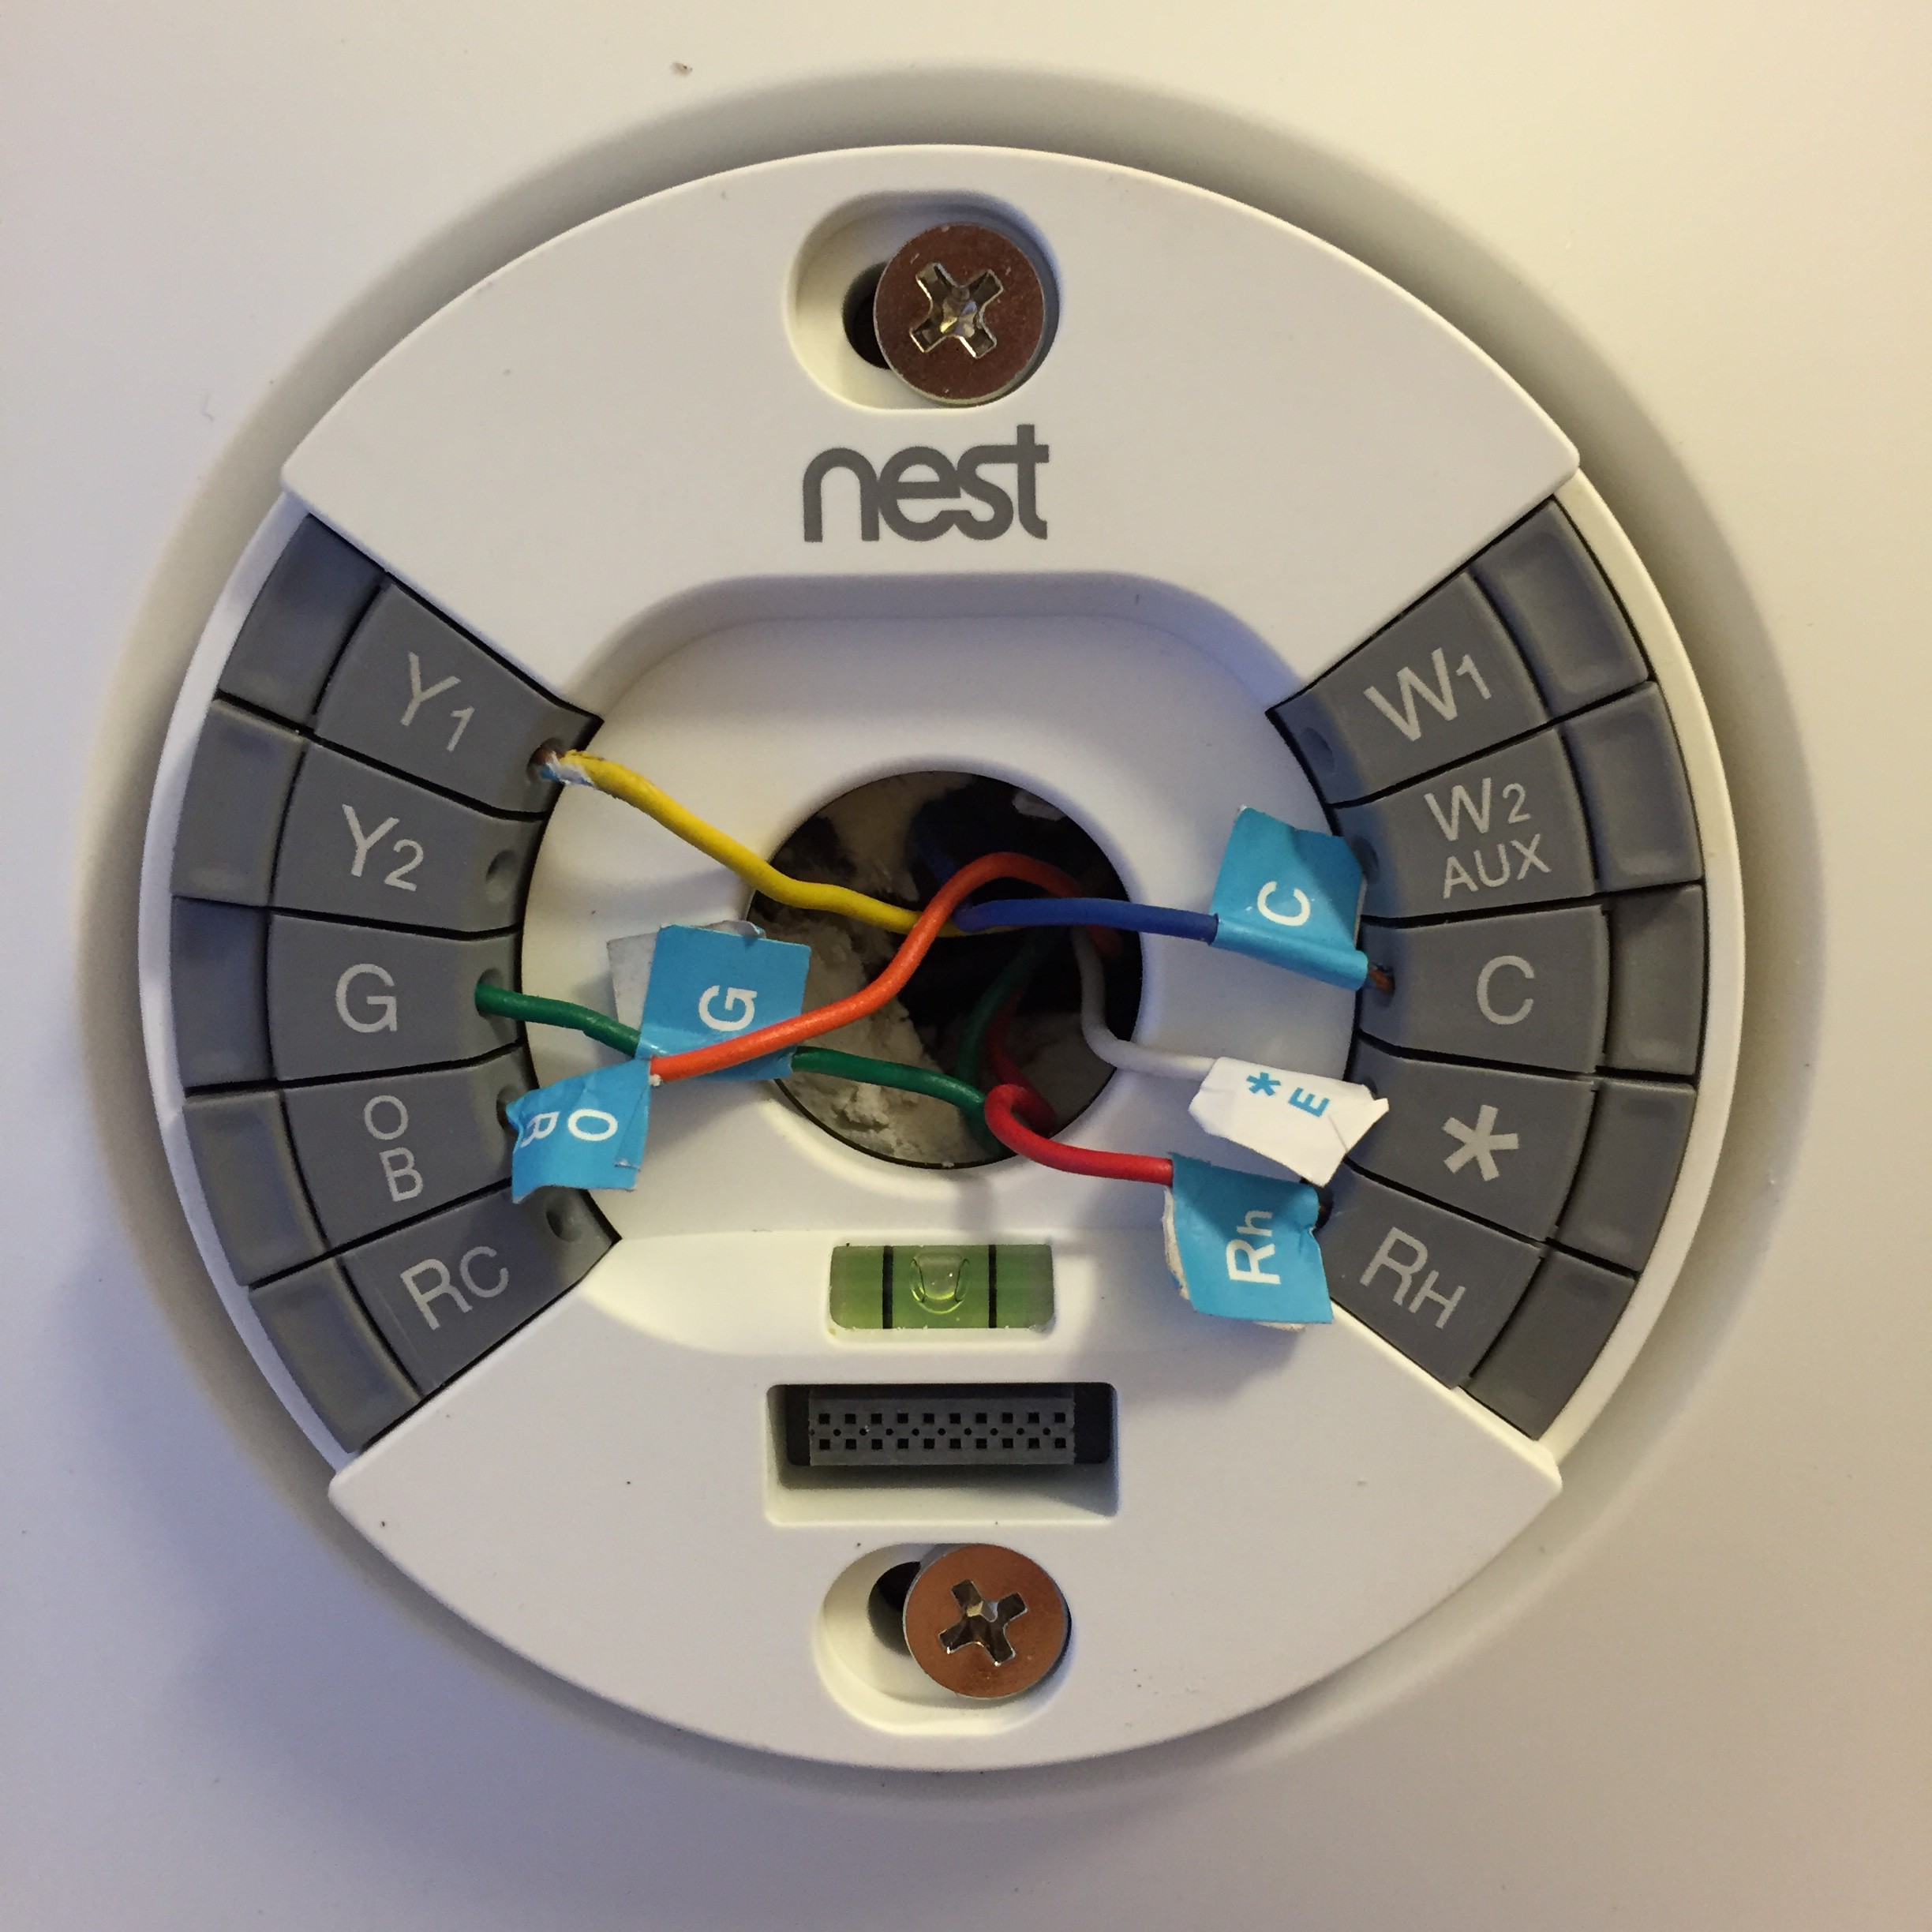 NEST Back Plate e1433878189266 the self learning nest thermostat comes to the sauser home! nest thermostat heat pump wiring diagram at honlapkeszites.co